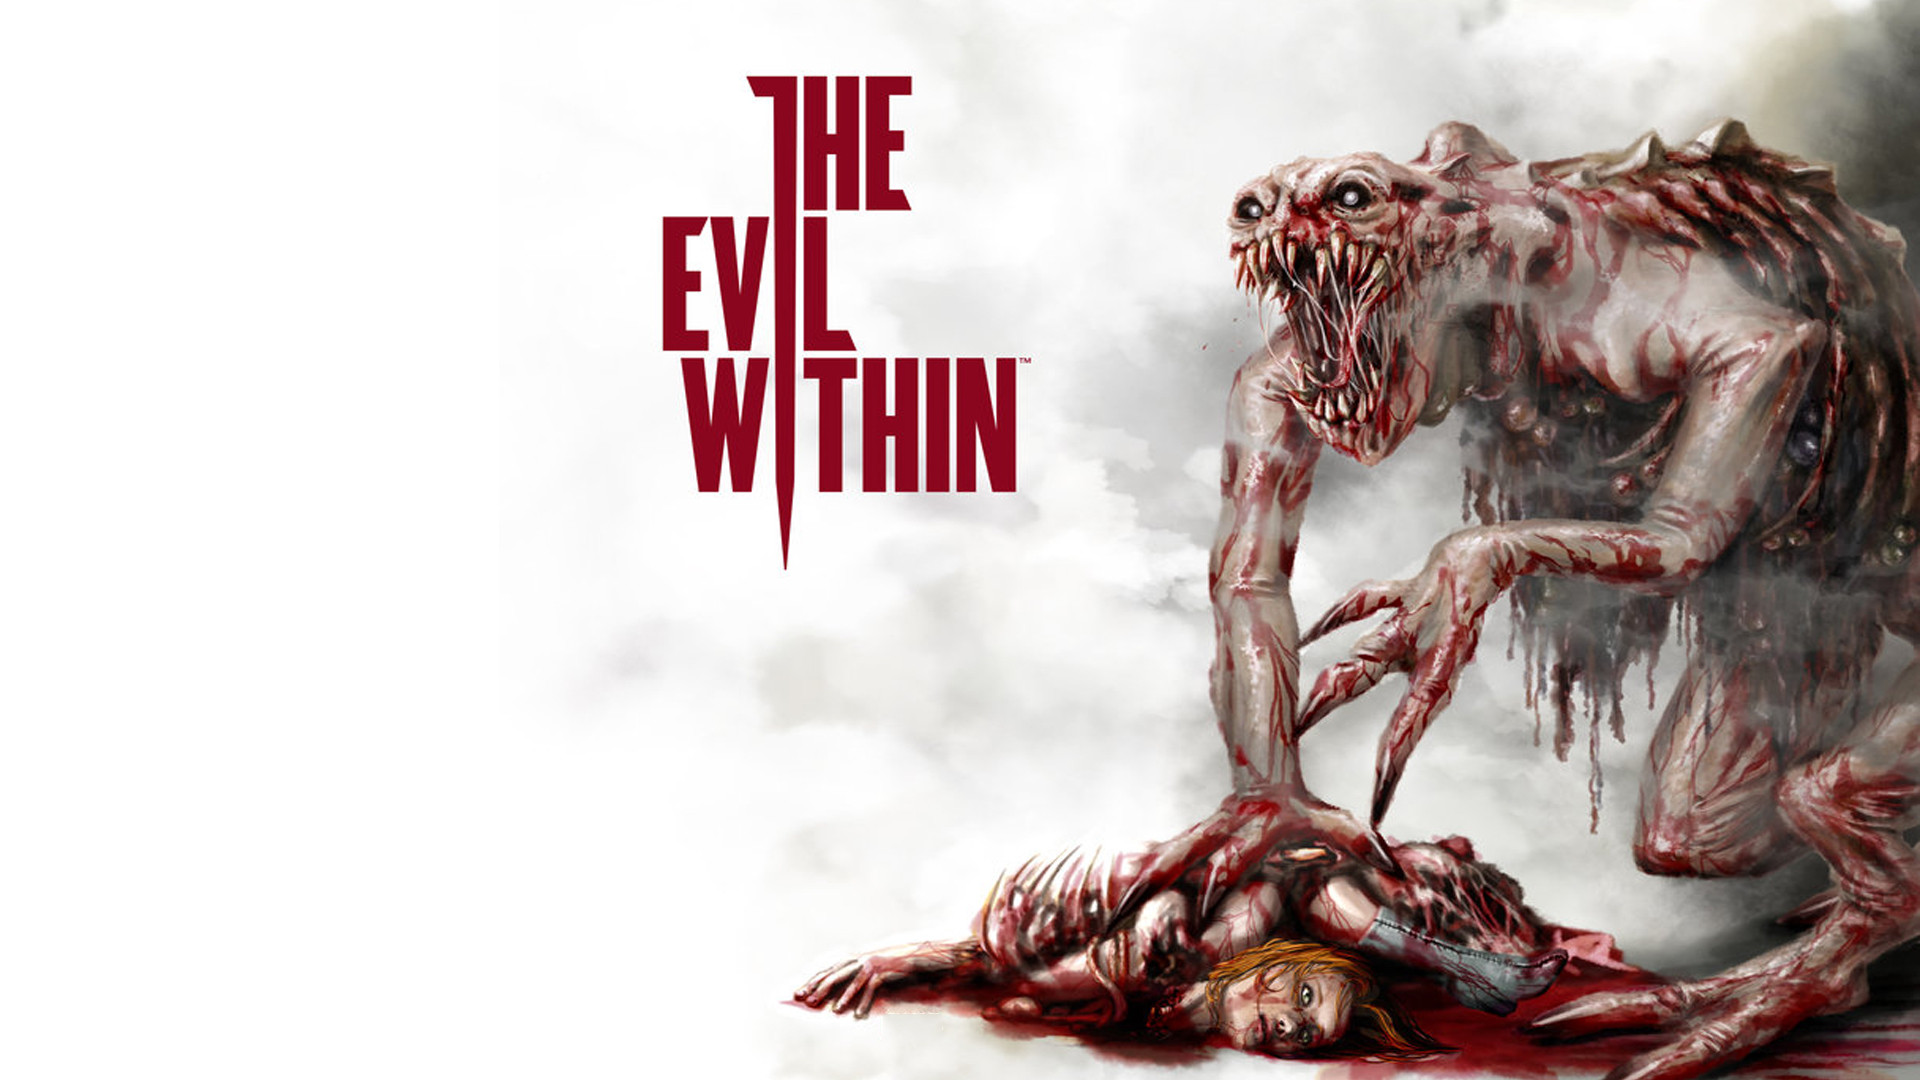 the evil within wallpaper #5